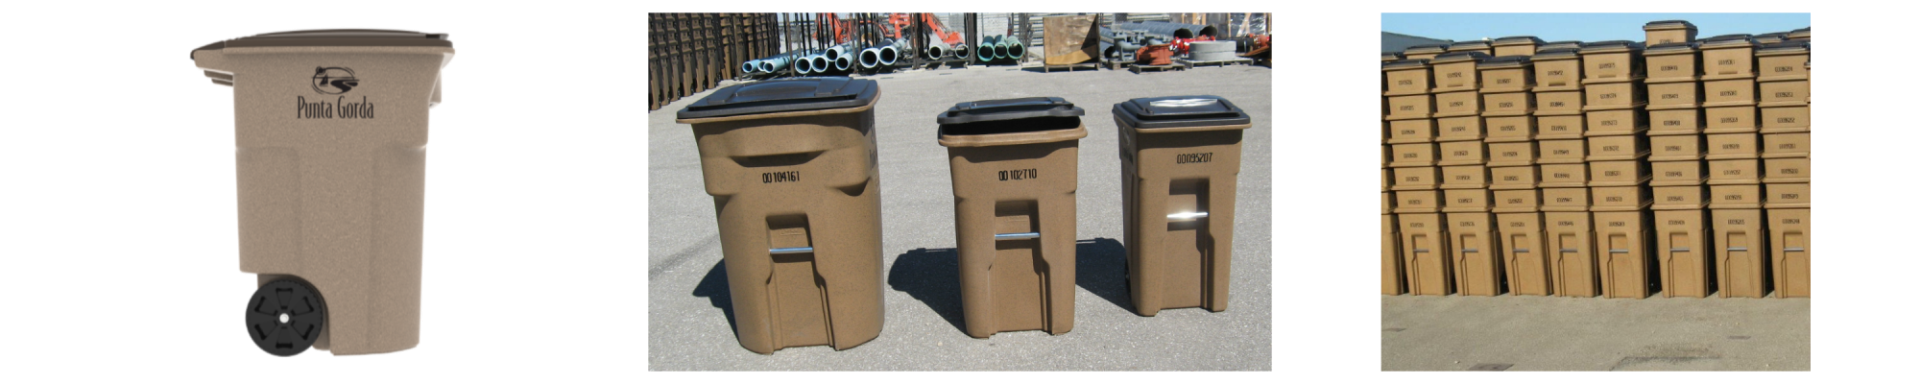 Toter available garbge containers. Large, medium, and small.